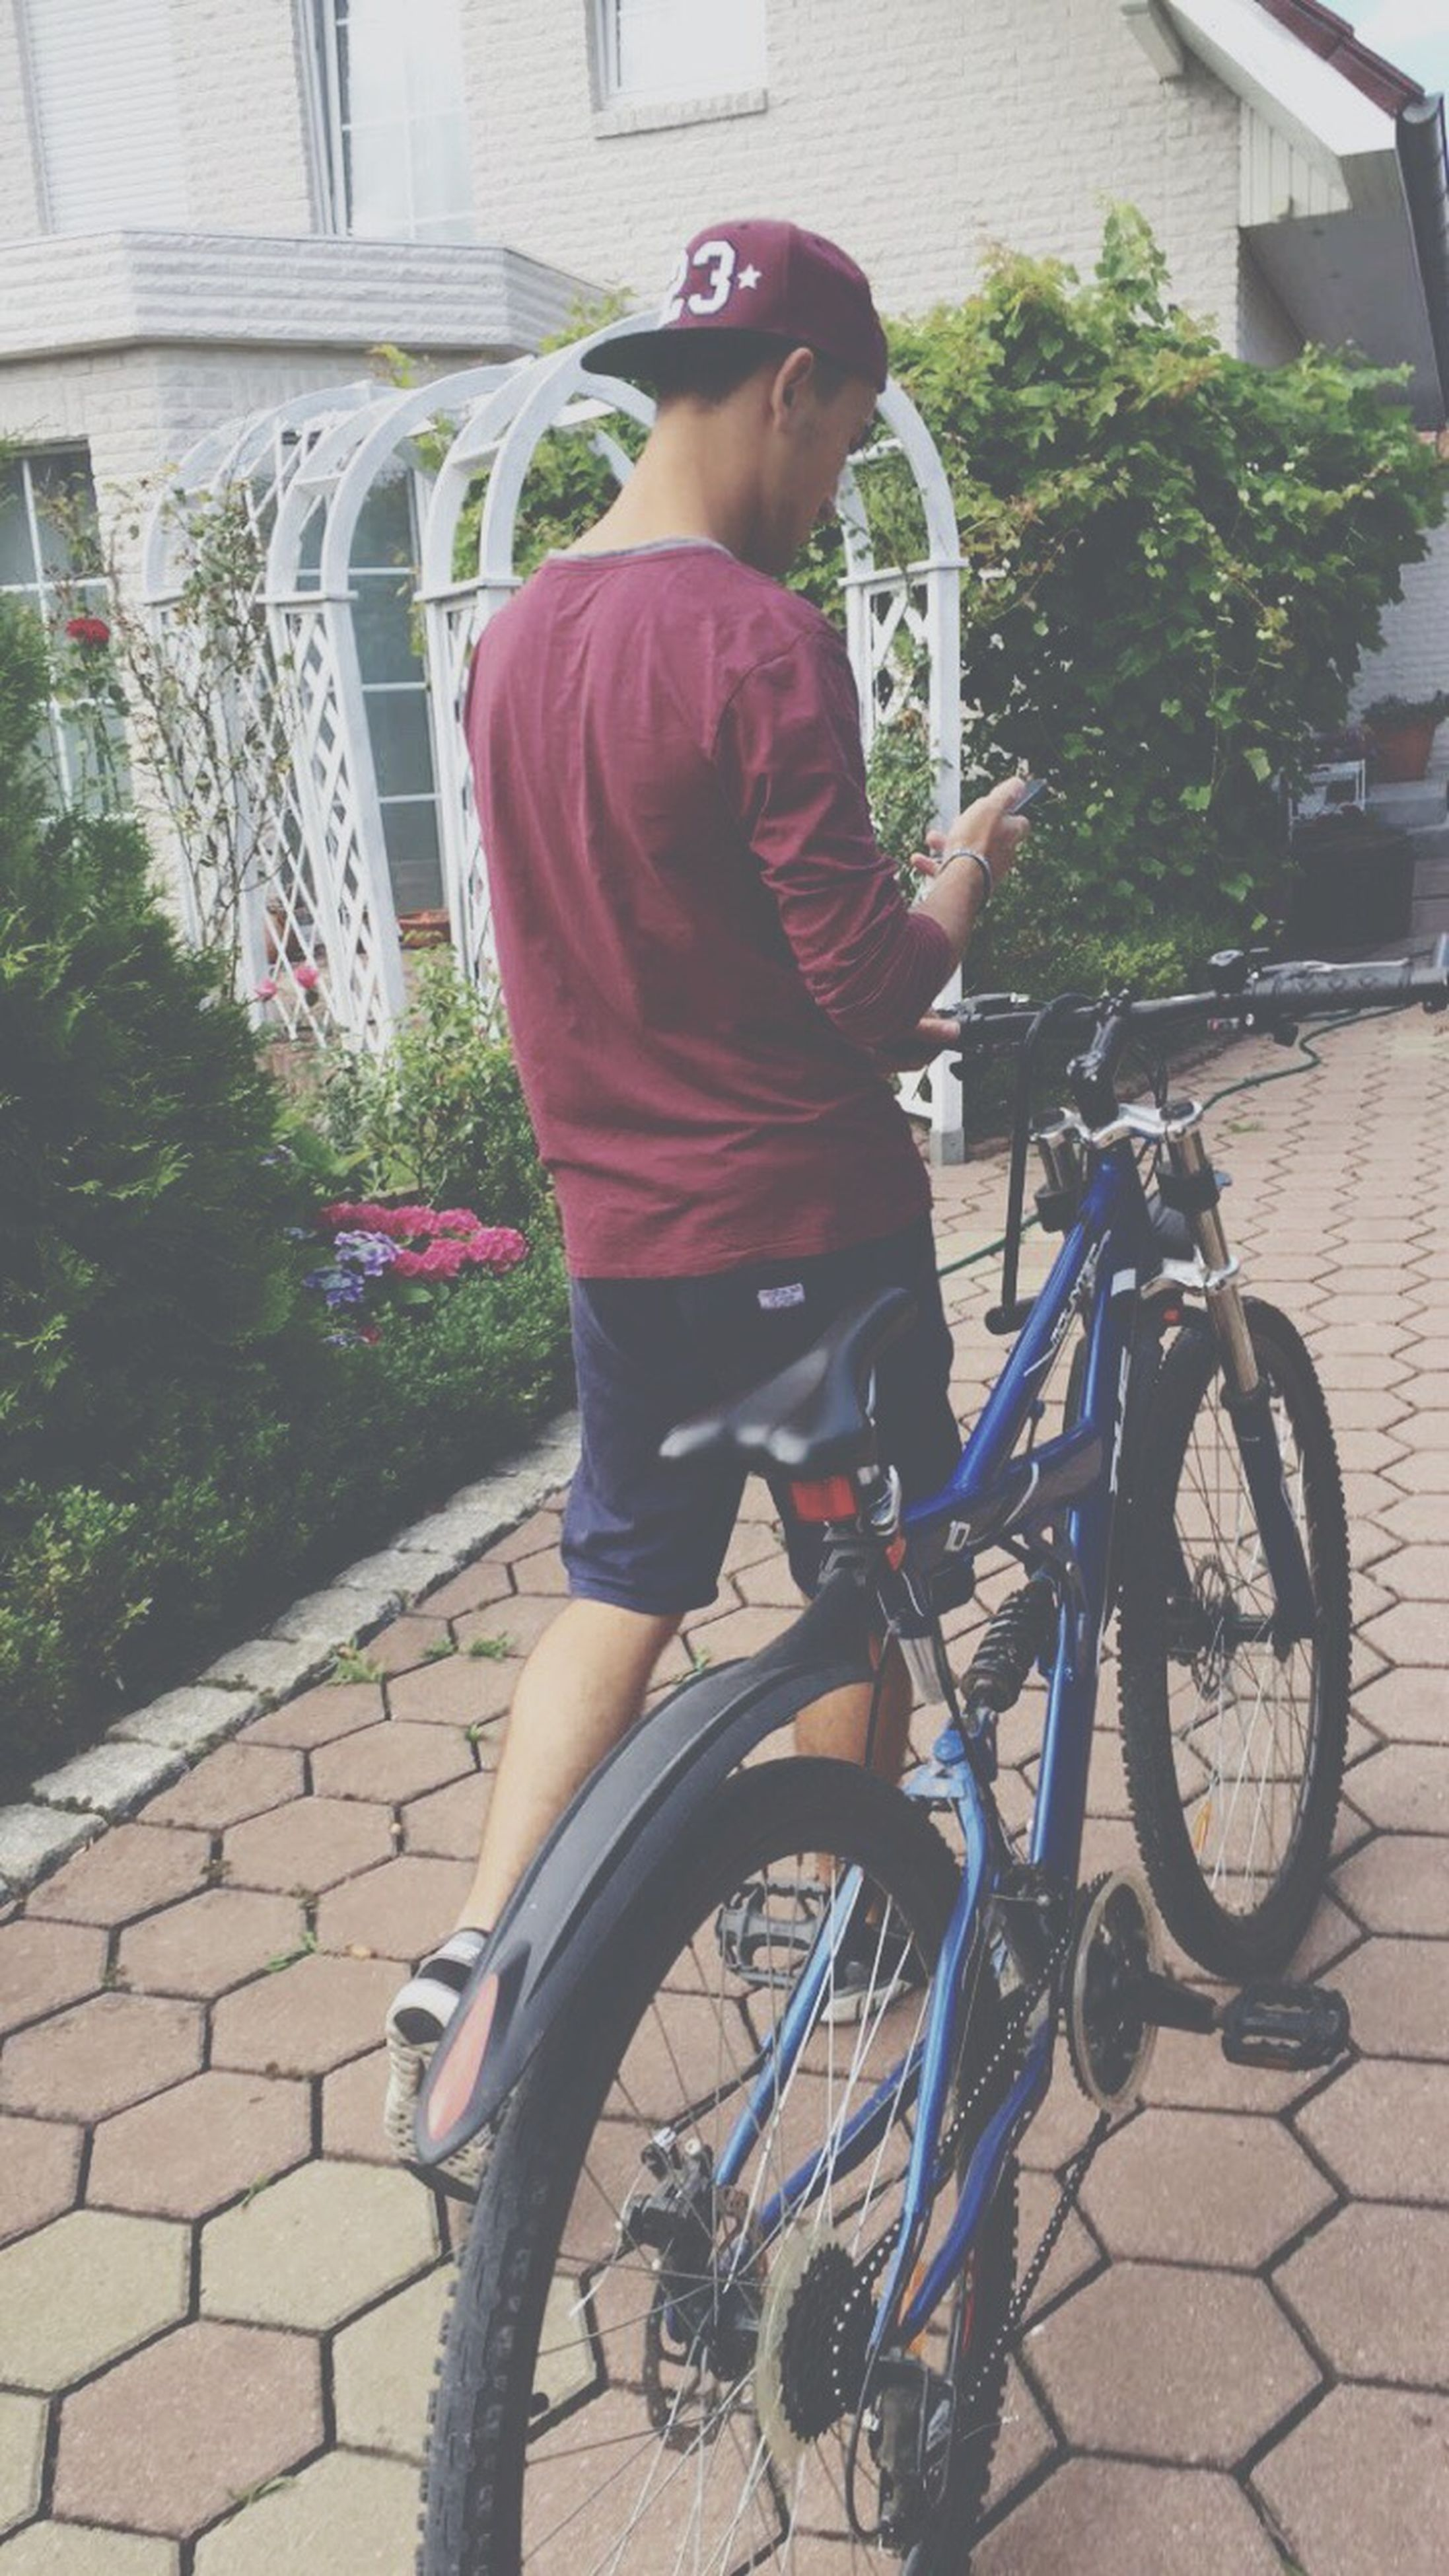 bicycle, outdoors, one person, full length, day, real people, architecture, tree, city, people